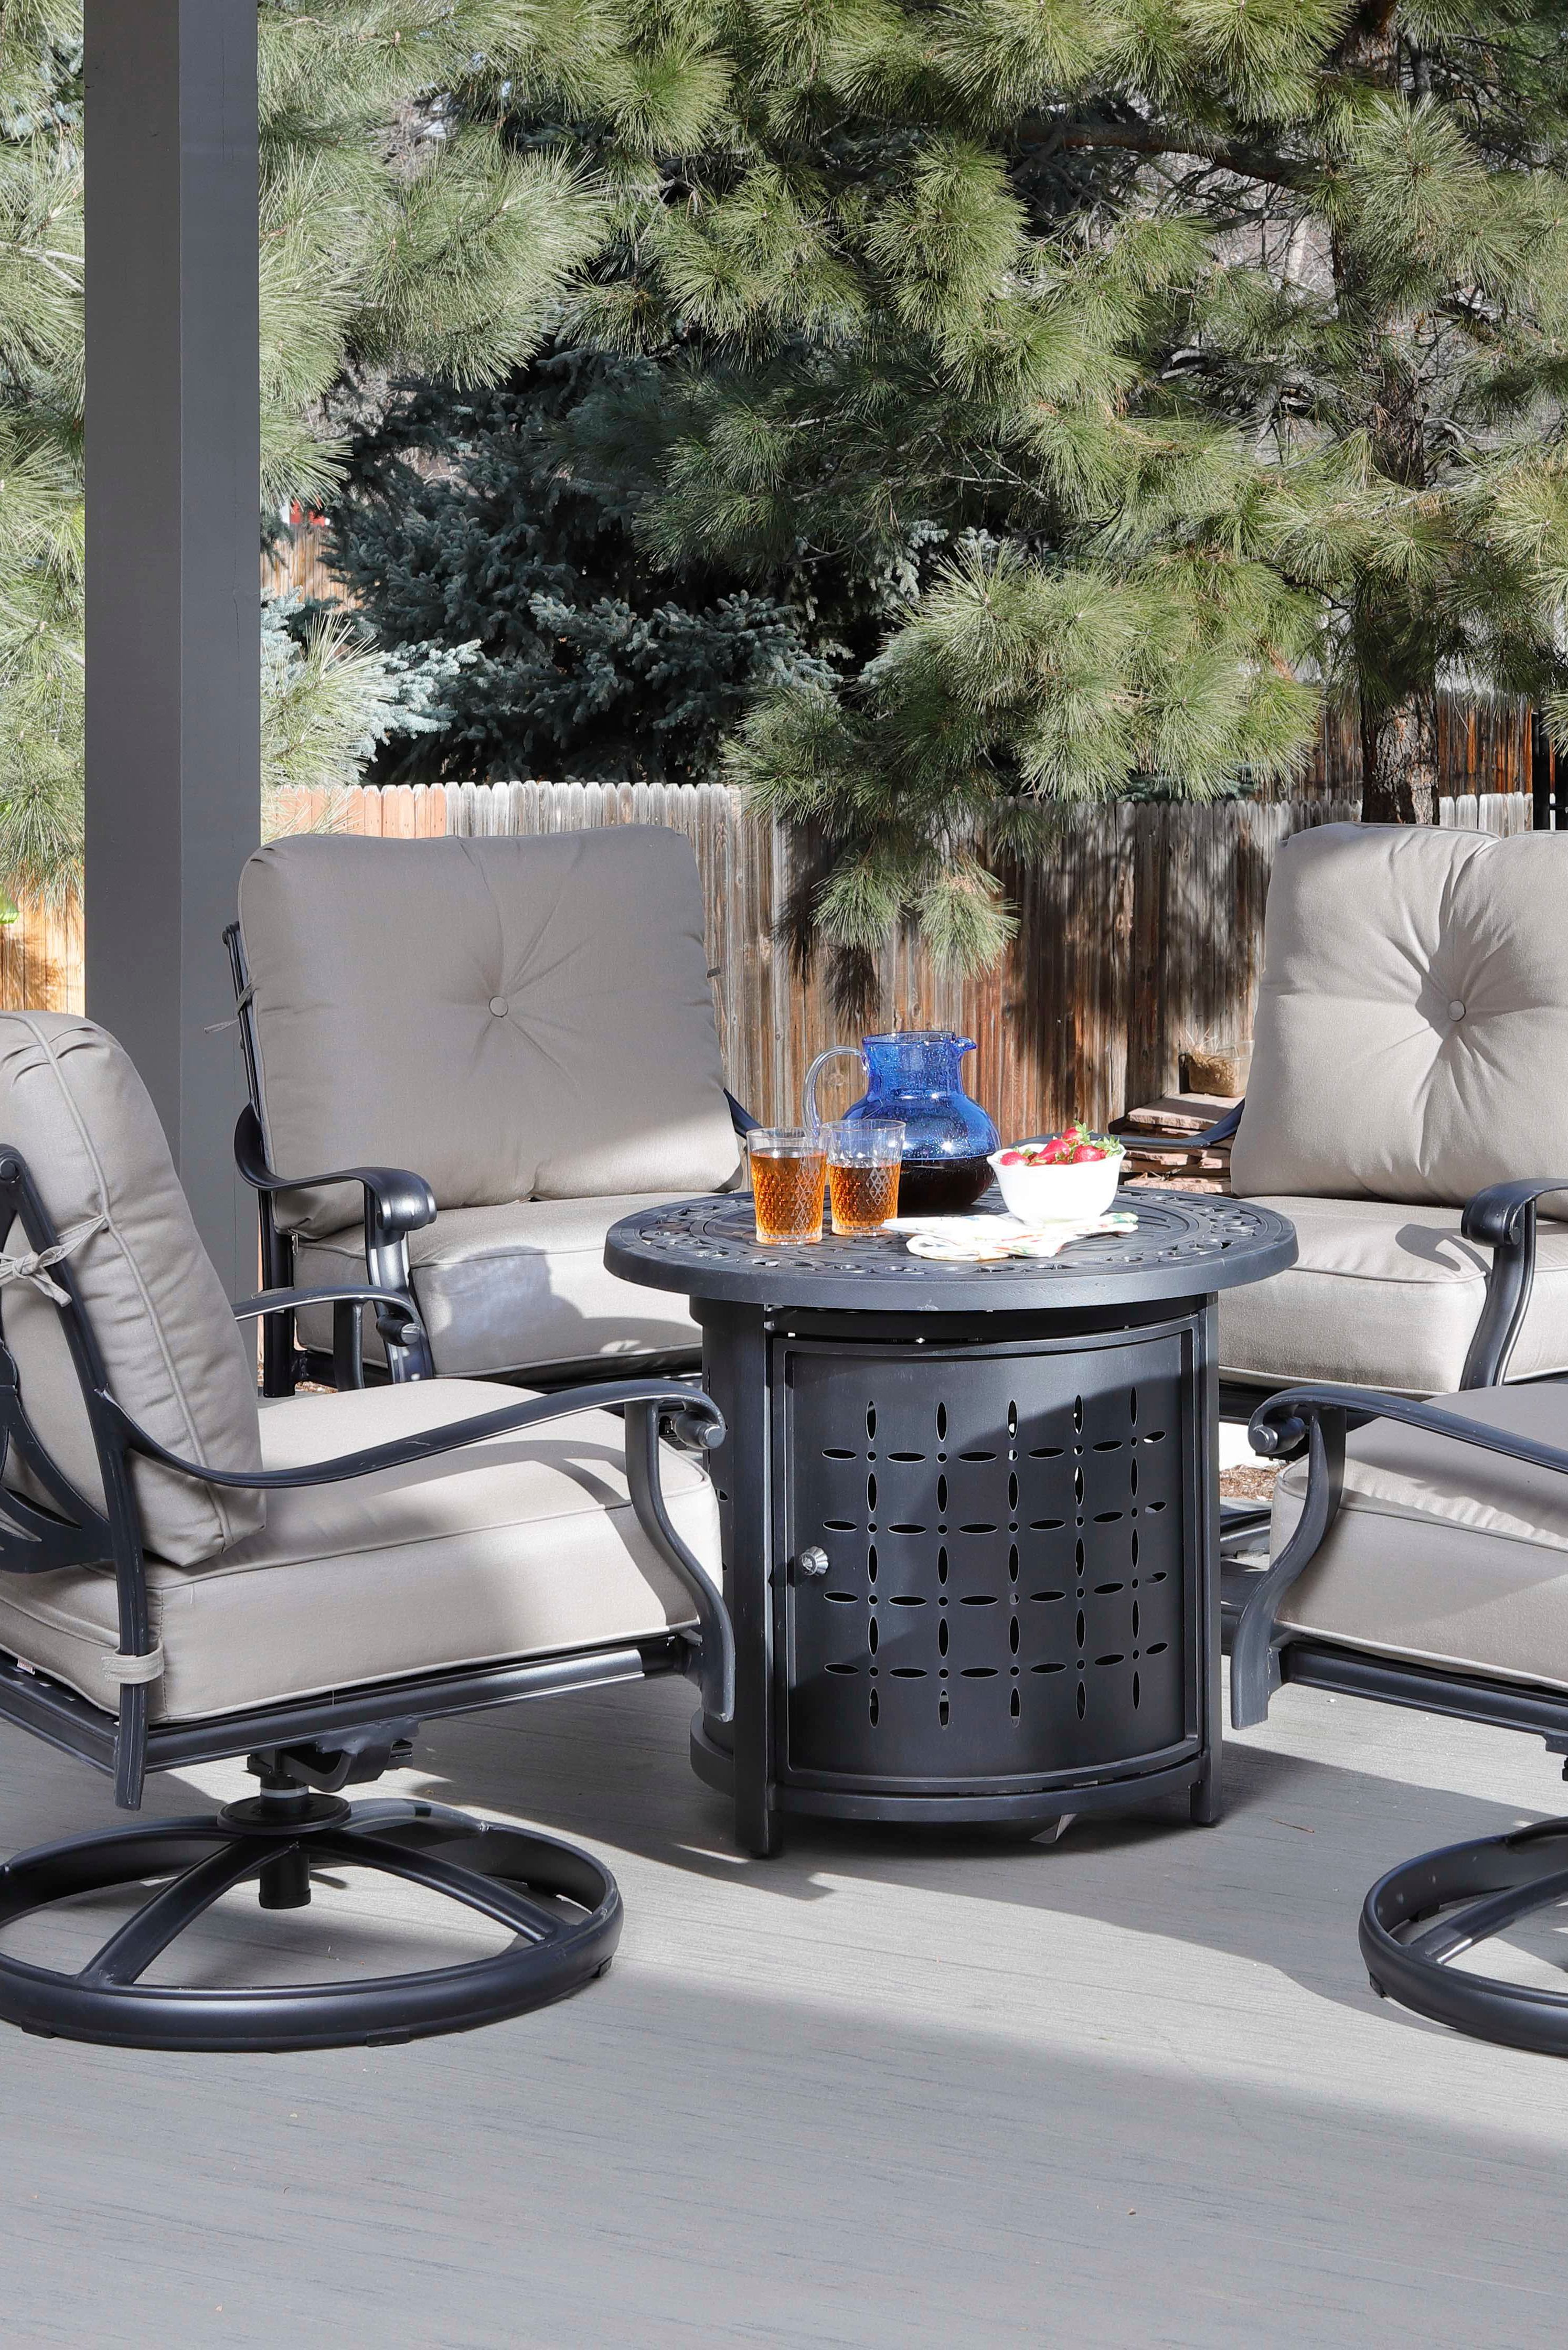 100 outdoor ideas in 2021 perfect